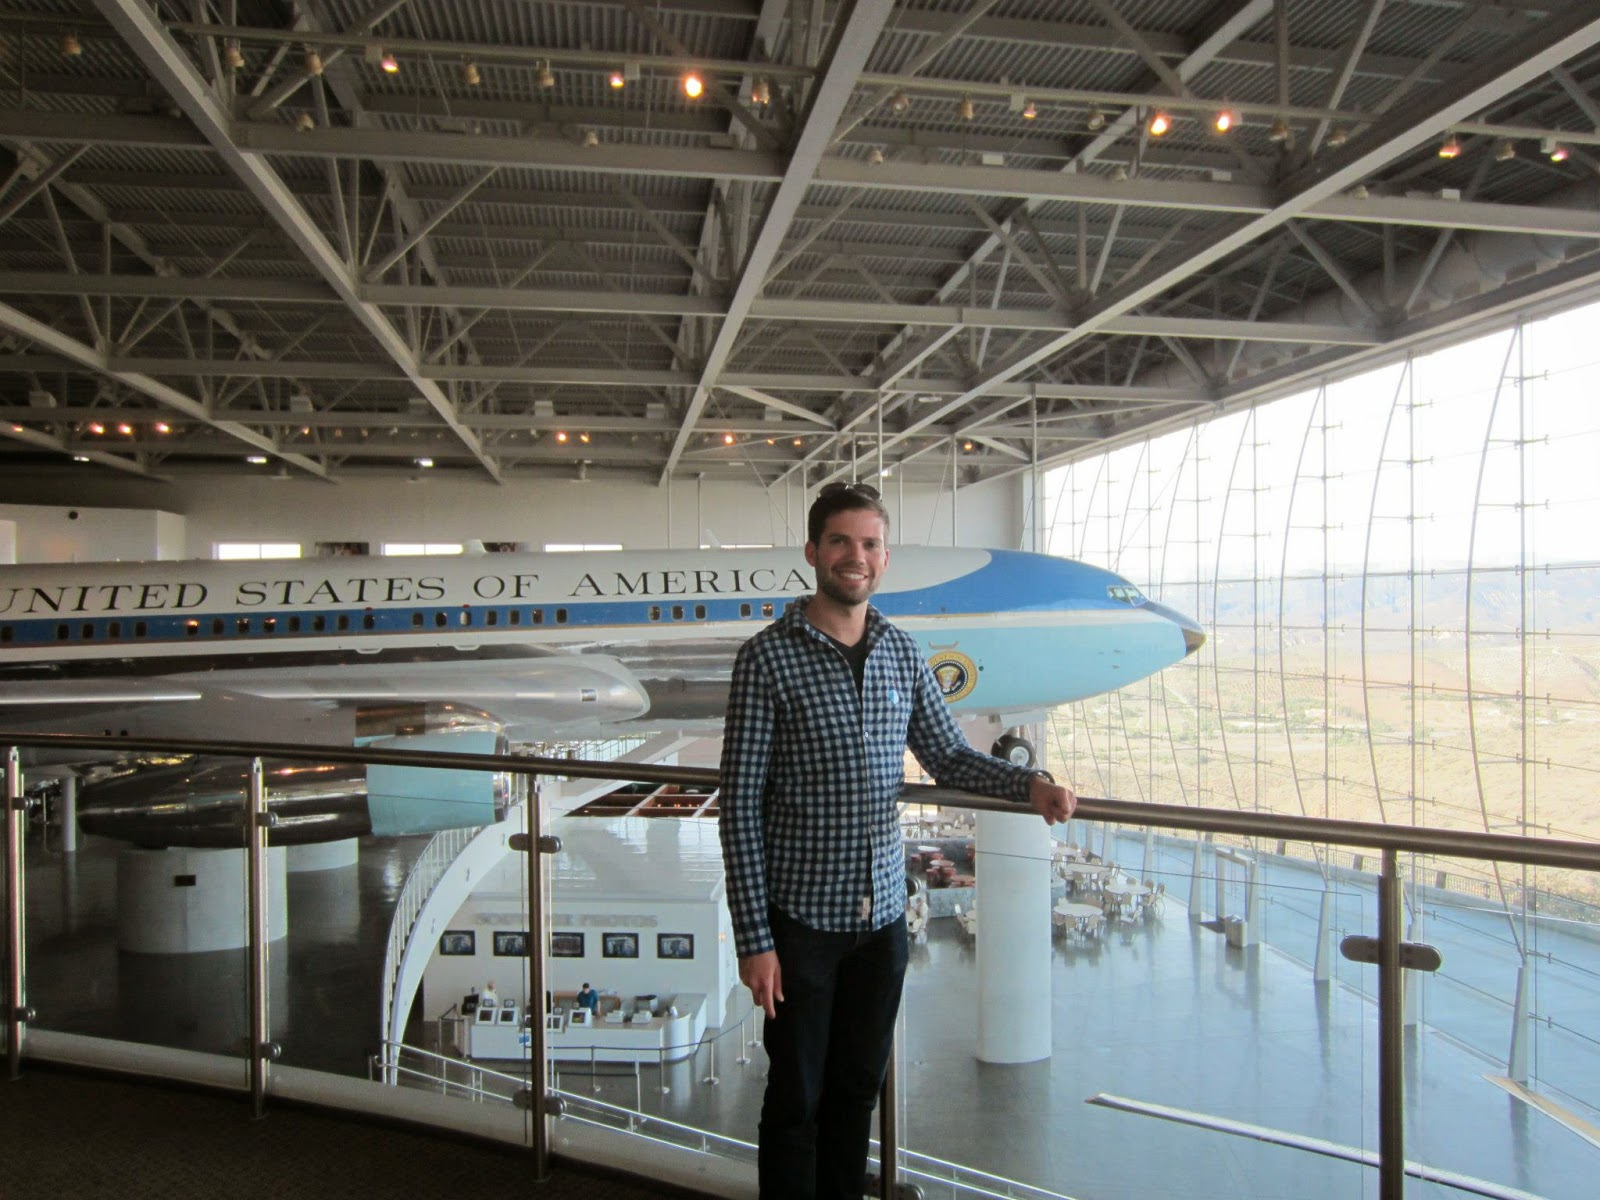 At the Ronald Reagan Presidential Library and Museum in Simi Valley, CA